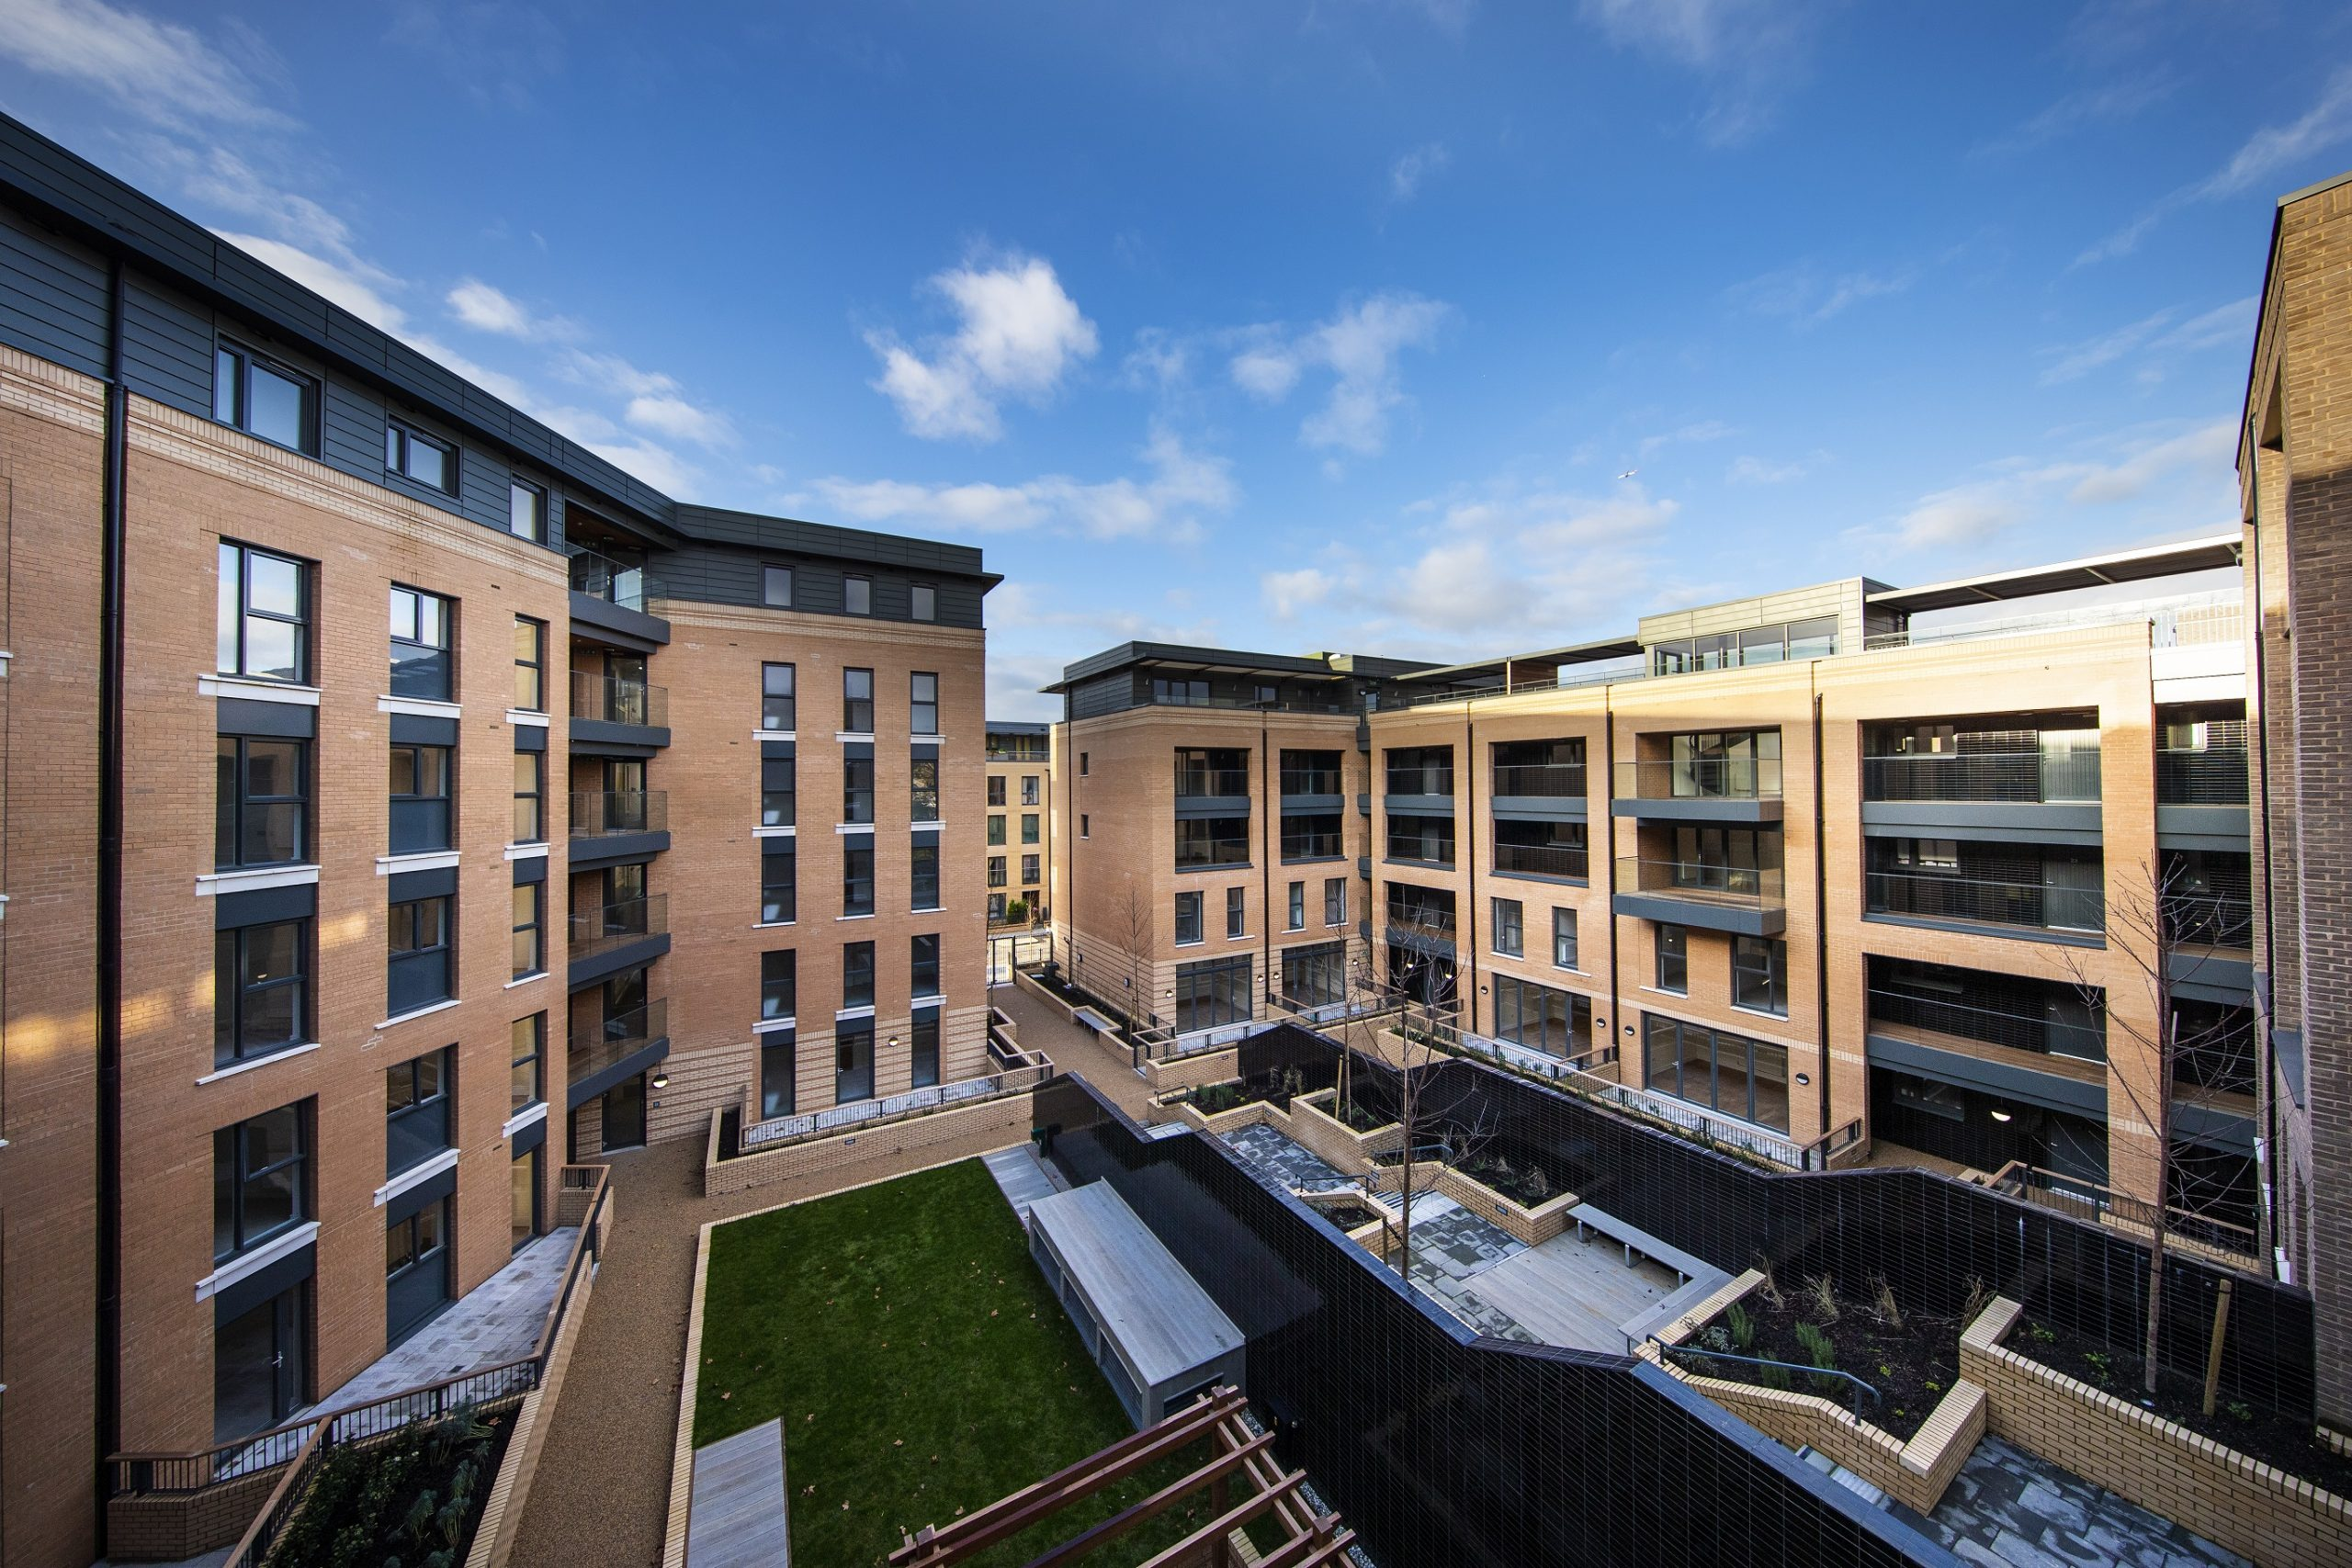 SO RESI TO LAUNCH SHARED OWNERSHIP REPORT WITH CAMBRIDGE UNIVERSITY IN VIRTUAL ROUNDTABLE